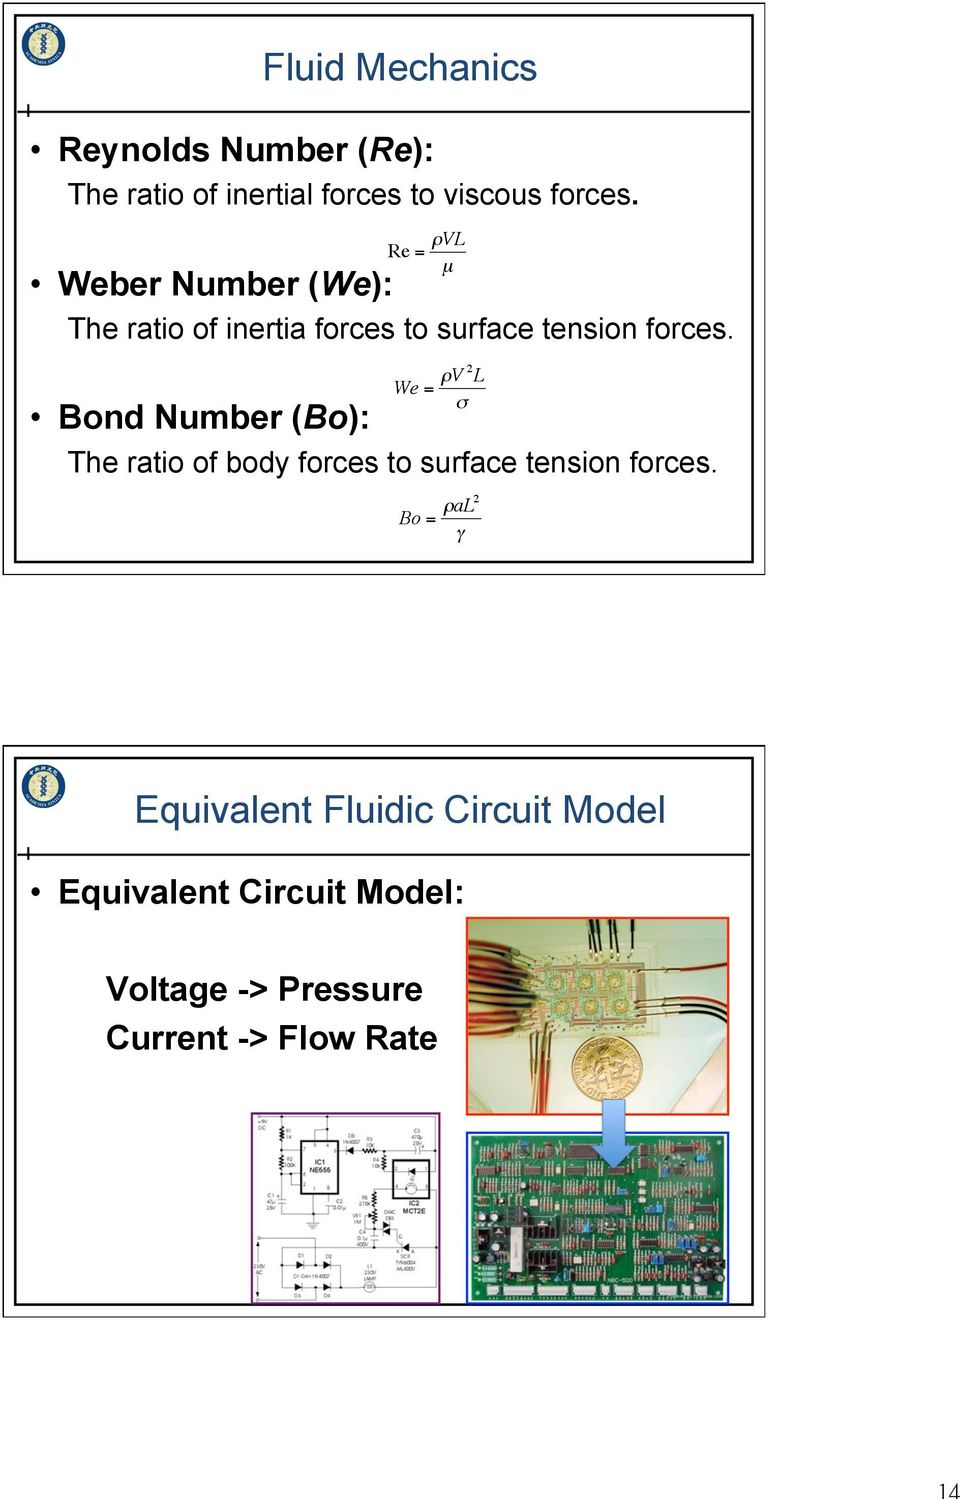 Bond Number (Bo): Re = ρvl µ The ratio of body forces to surface tension forces.